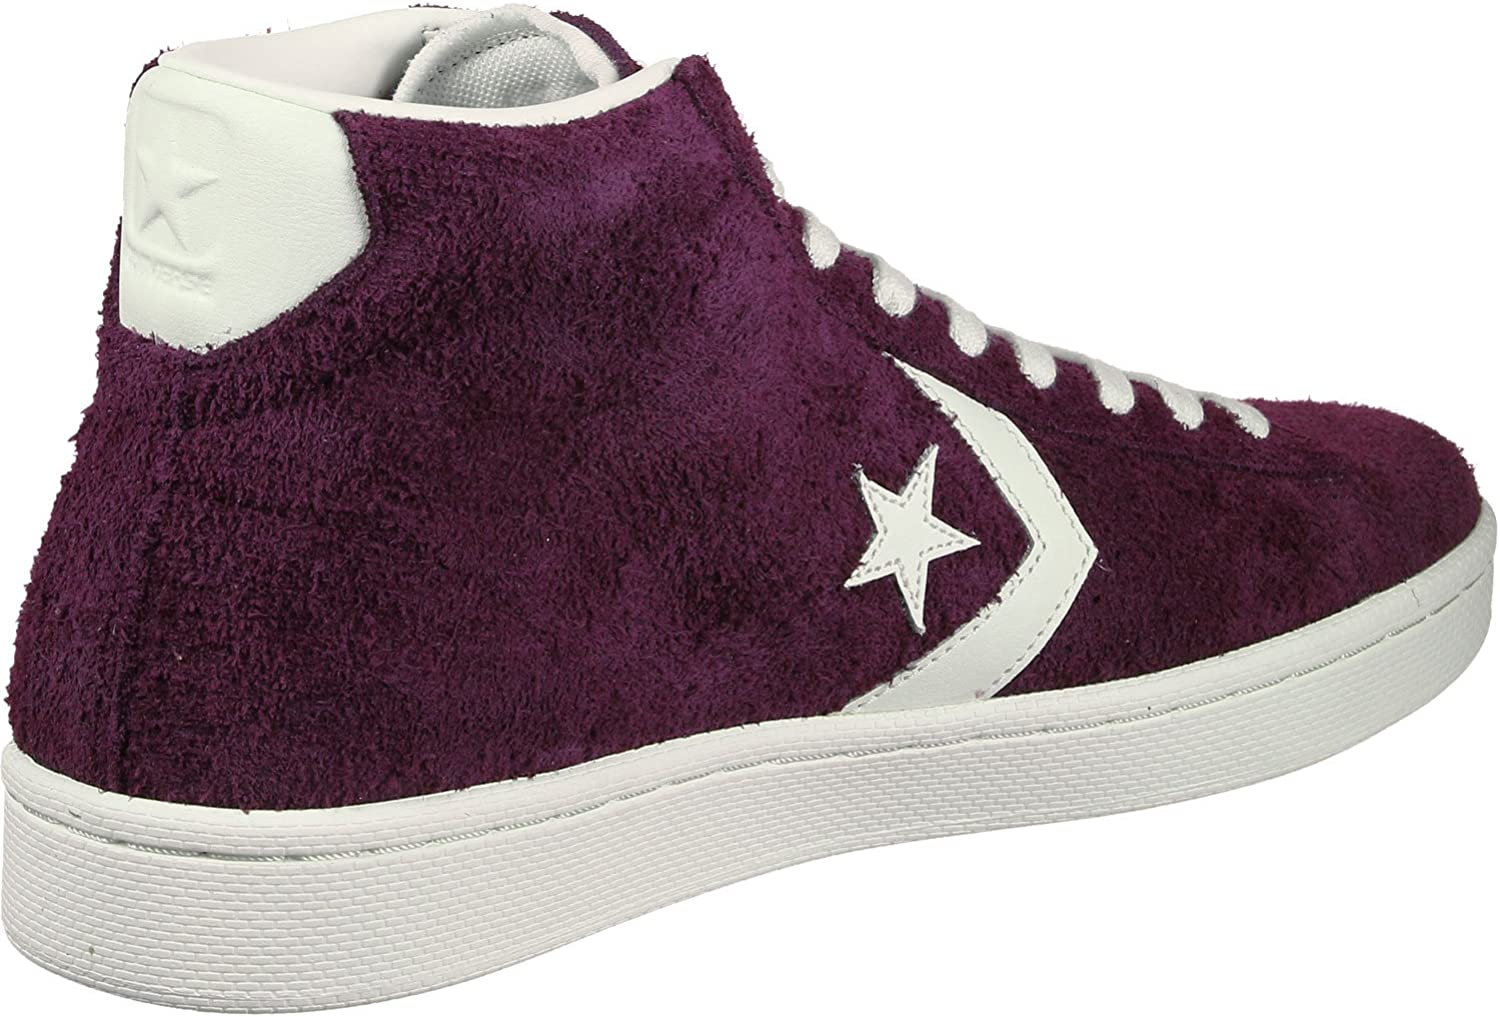 Converse Unisex Adults' Pro Leather Mid Hi-Top Trainers Purple